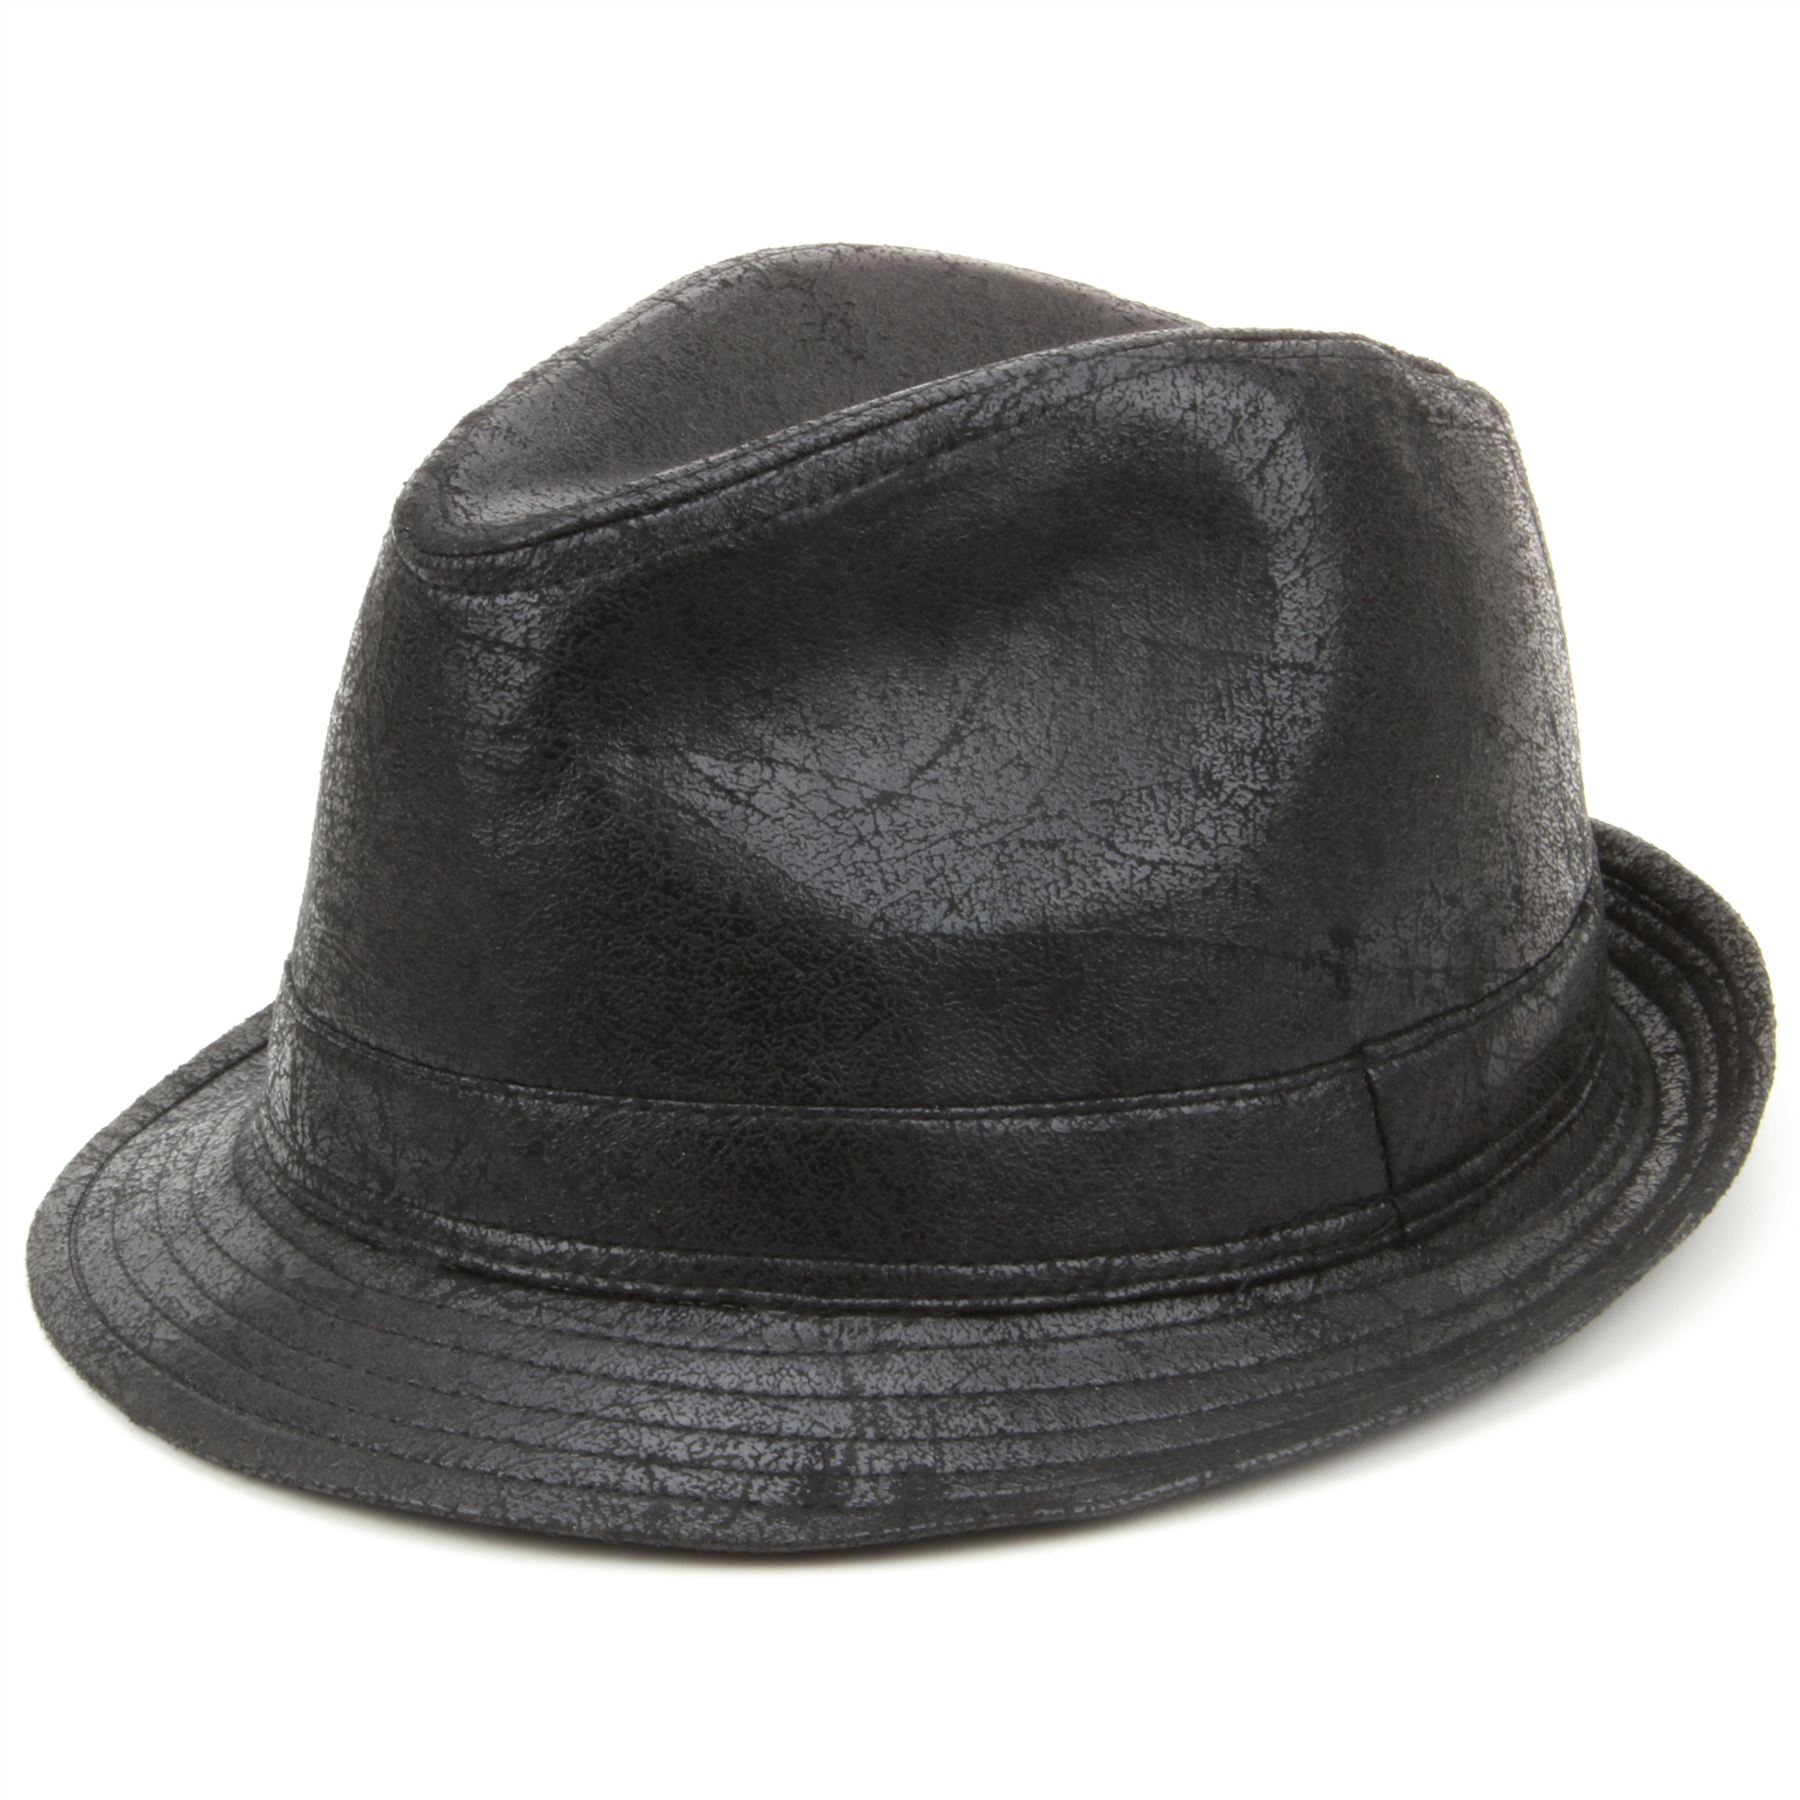 a8b72244be7ae Details about Trilby Hat BLACK Hawkins Distressed Leather Effect Faux Retro  Fedora Vintage